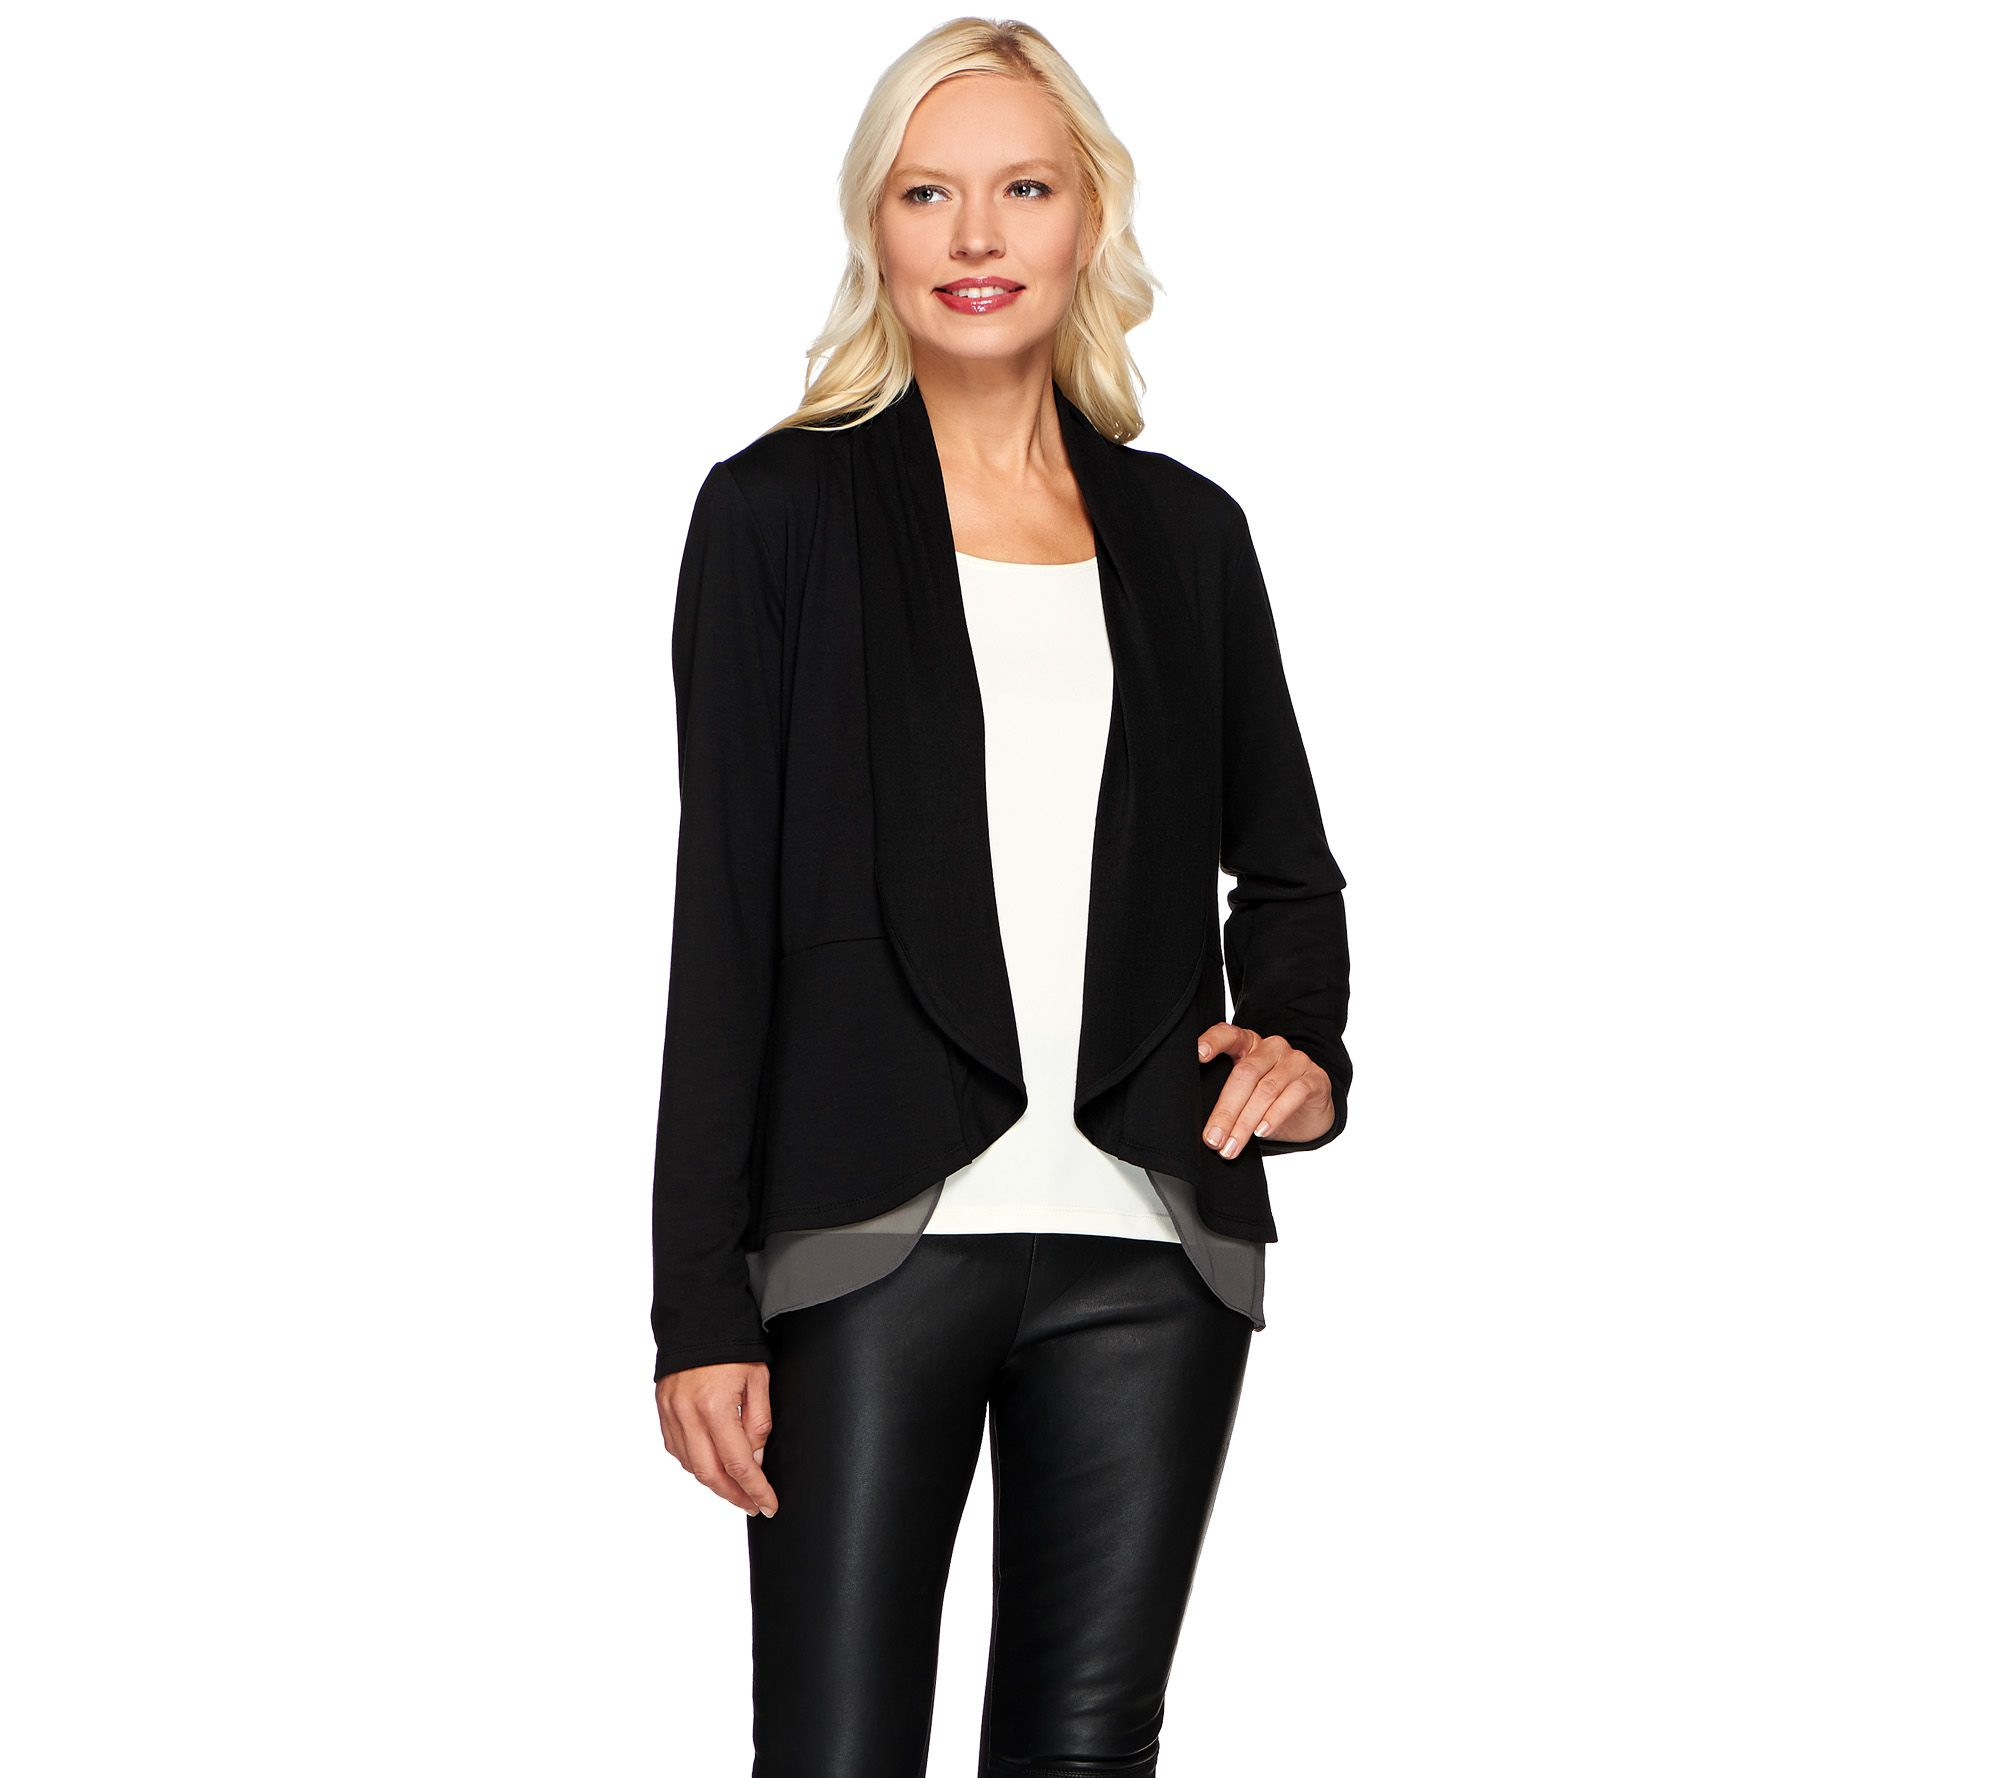 LOGO Lounge by Lori Goldstein French Terry Peplum Cardigan w/ Chiffon Trim  - Page 1 — QVC.com